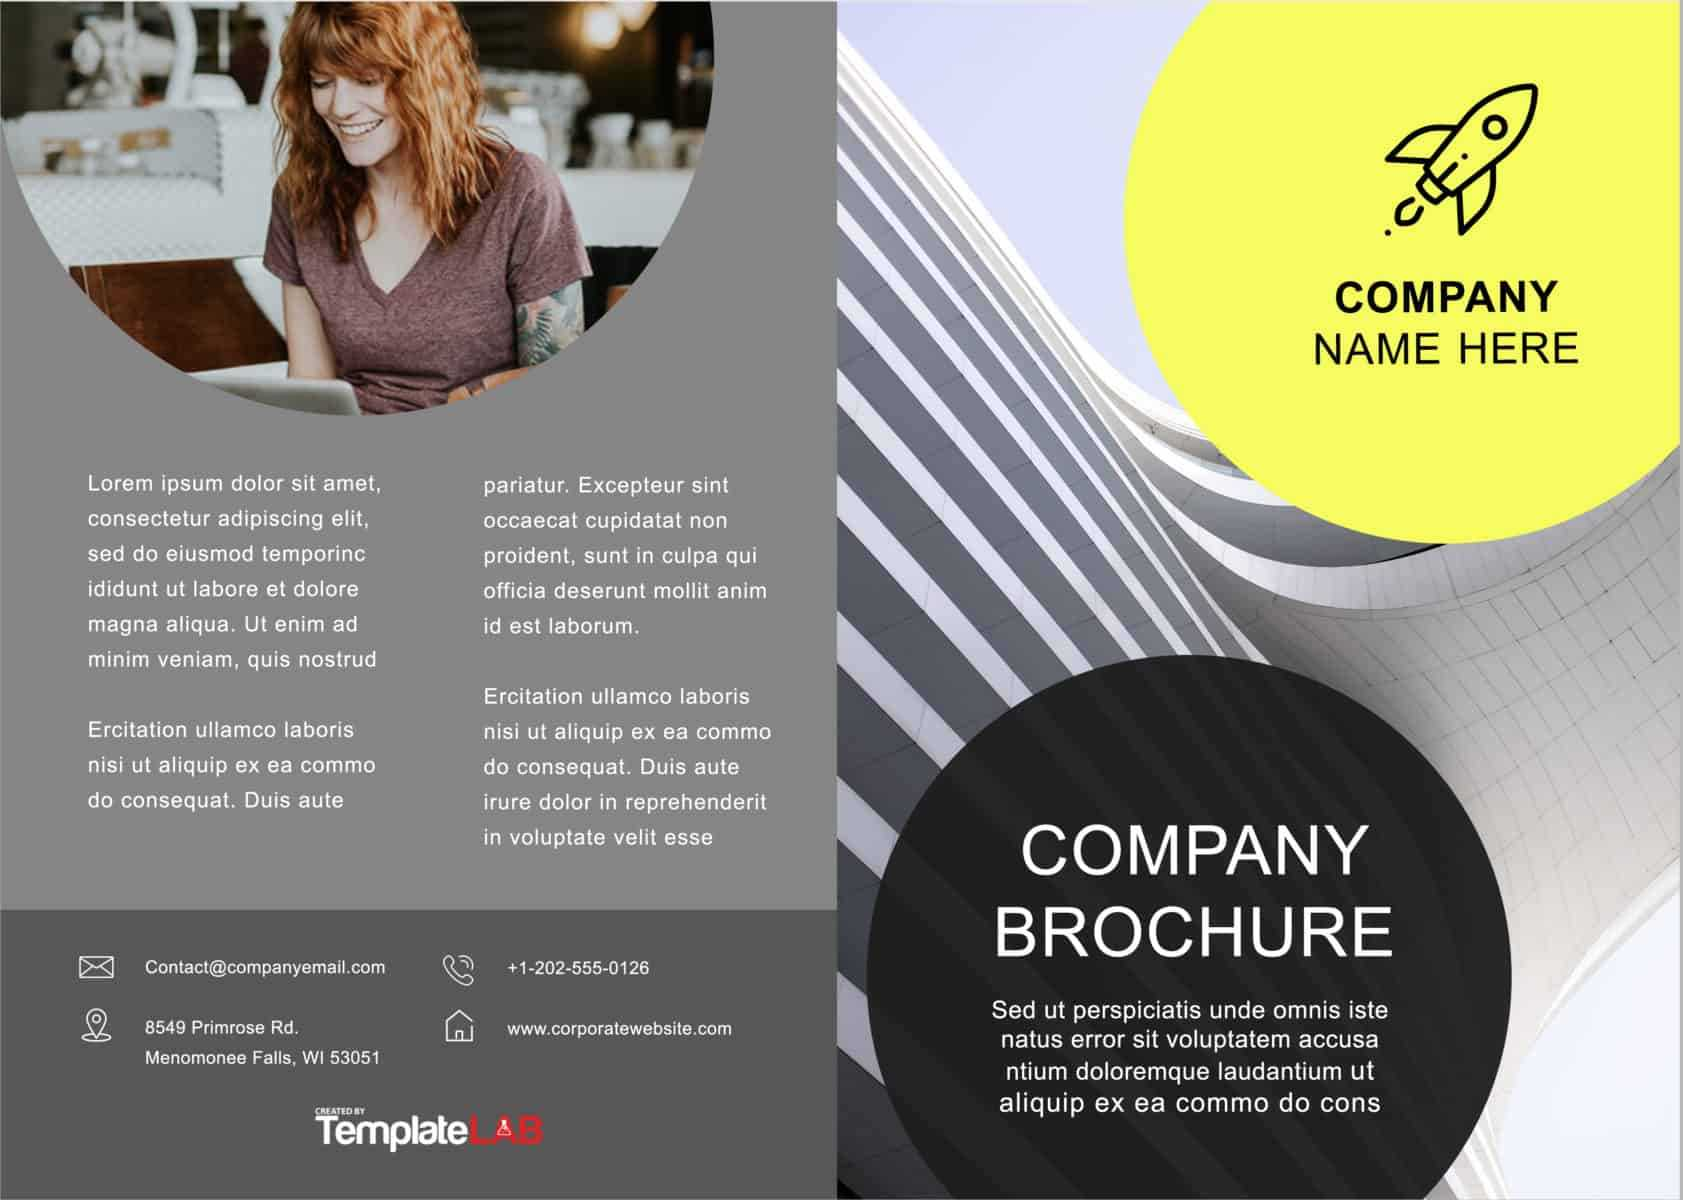 33 Free Brochure Templates (Word + Pdf) ᐅ Templatelab With Free Template For Brochure Microsoft Office